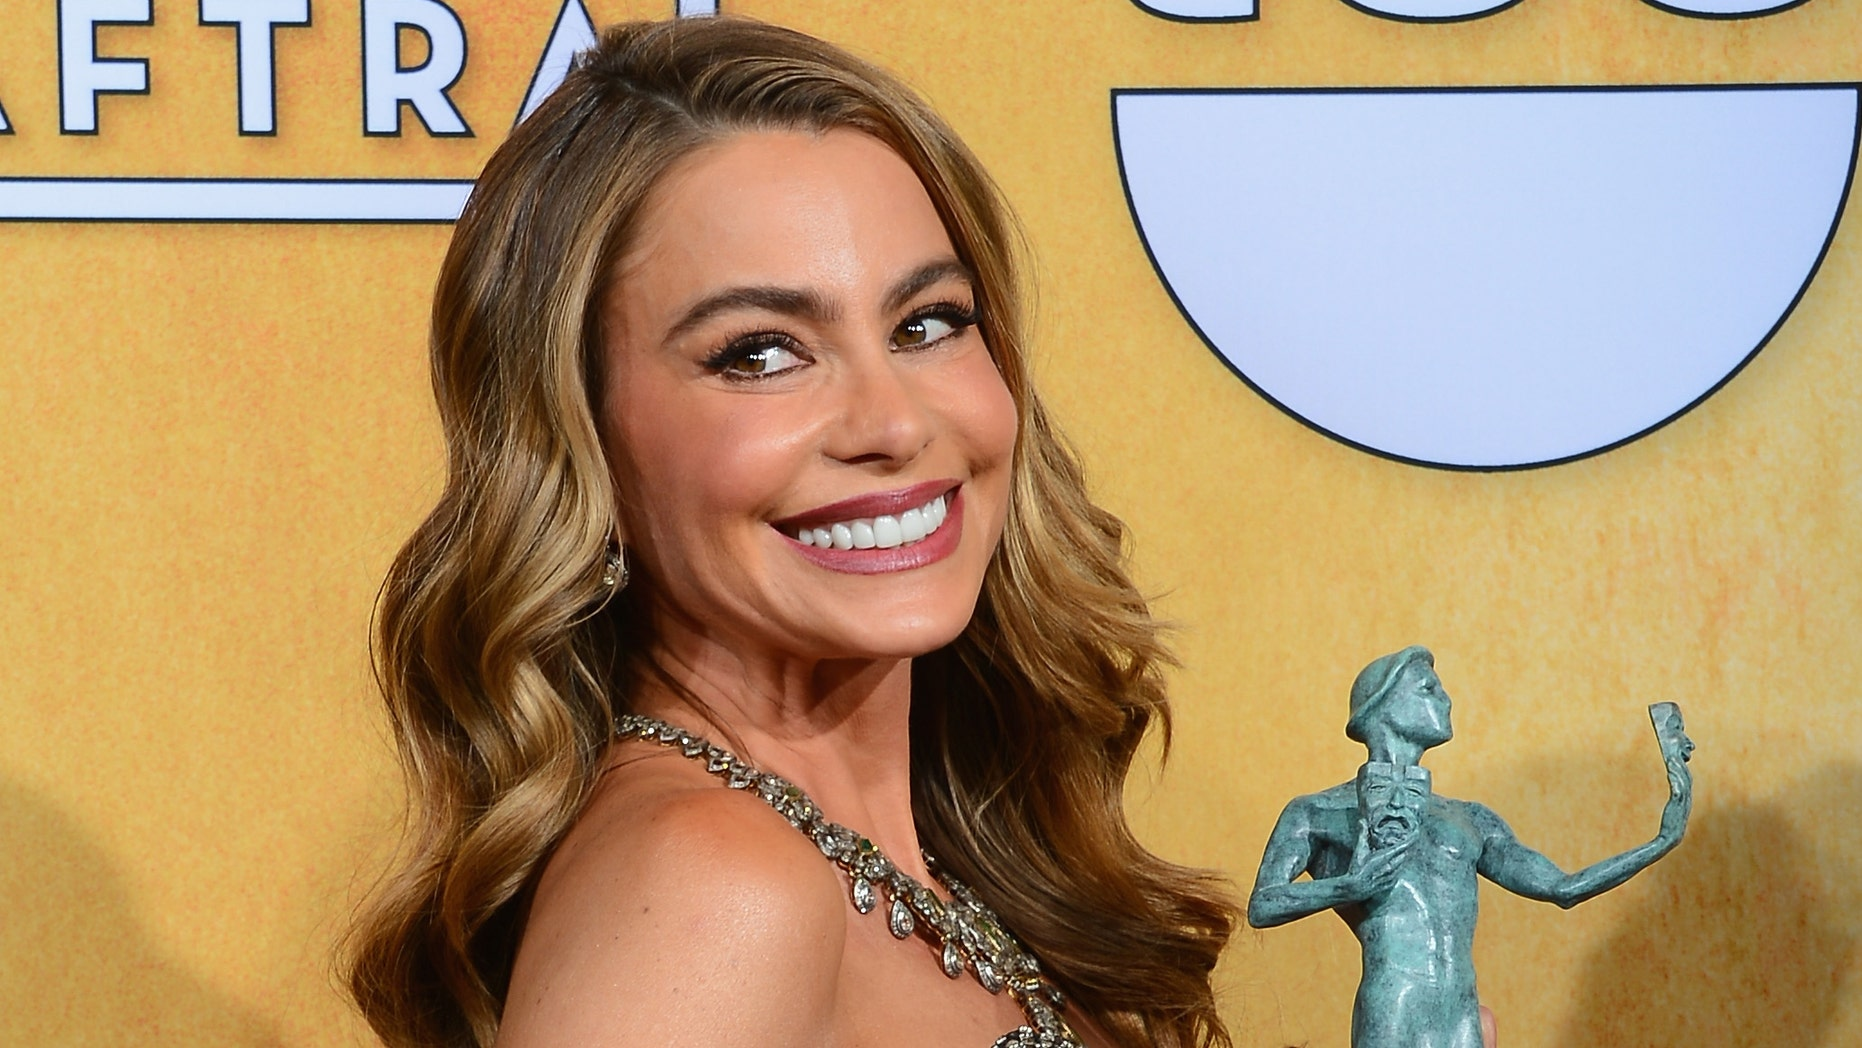 LOS ANGELES, CA - JANUARY 18:  Actress Sofia Vergara, winner of the Outstanding Performance by an Ensemble in a Comedy Series award for 'Modern Family,' poses in the press room during the 20th Annual Screen Actors Guild Awards at The Shrine Auditorium on January 18, 2014 in Los Angeles, California.  (Photo by Ethan Miller/Getty Images)